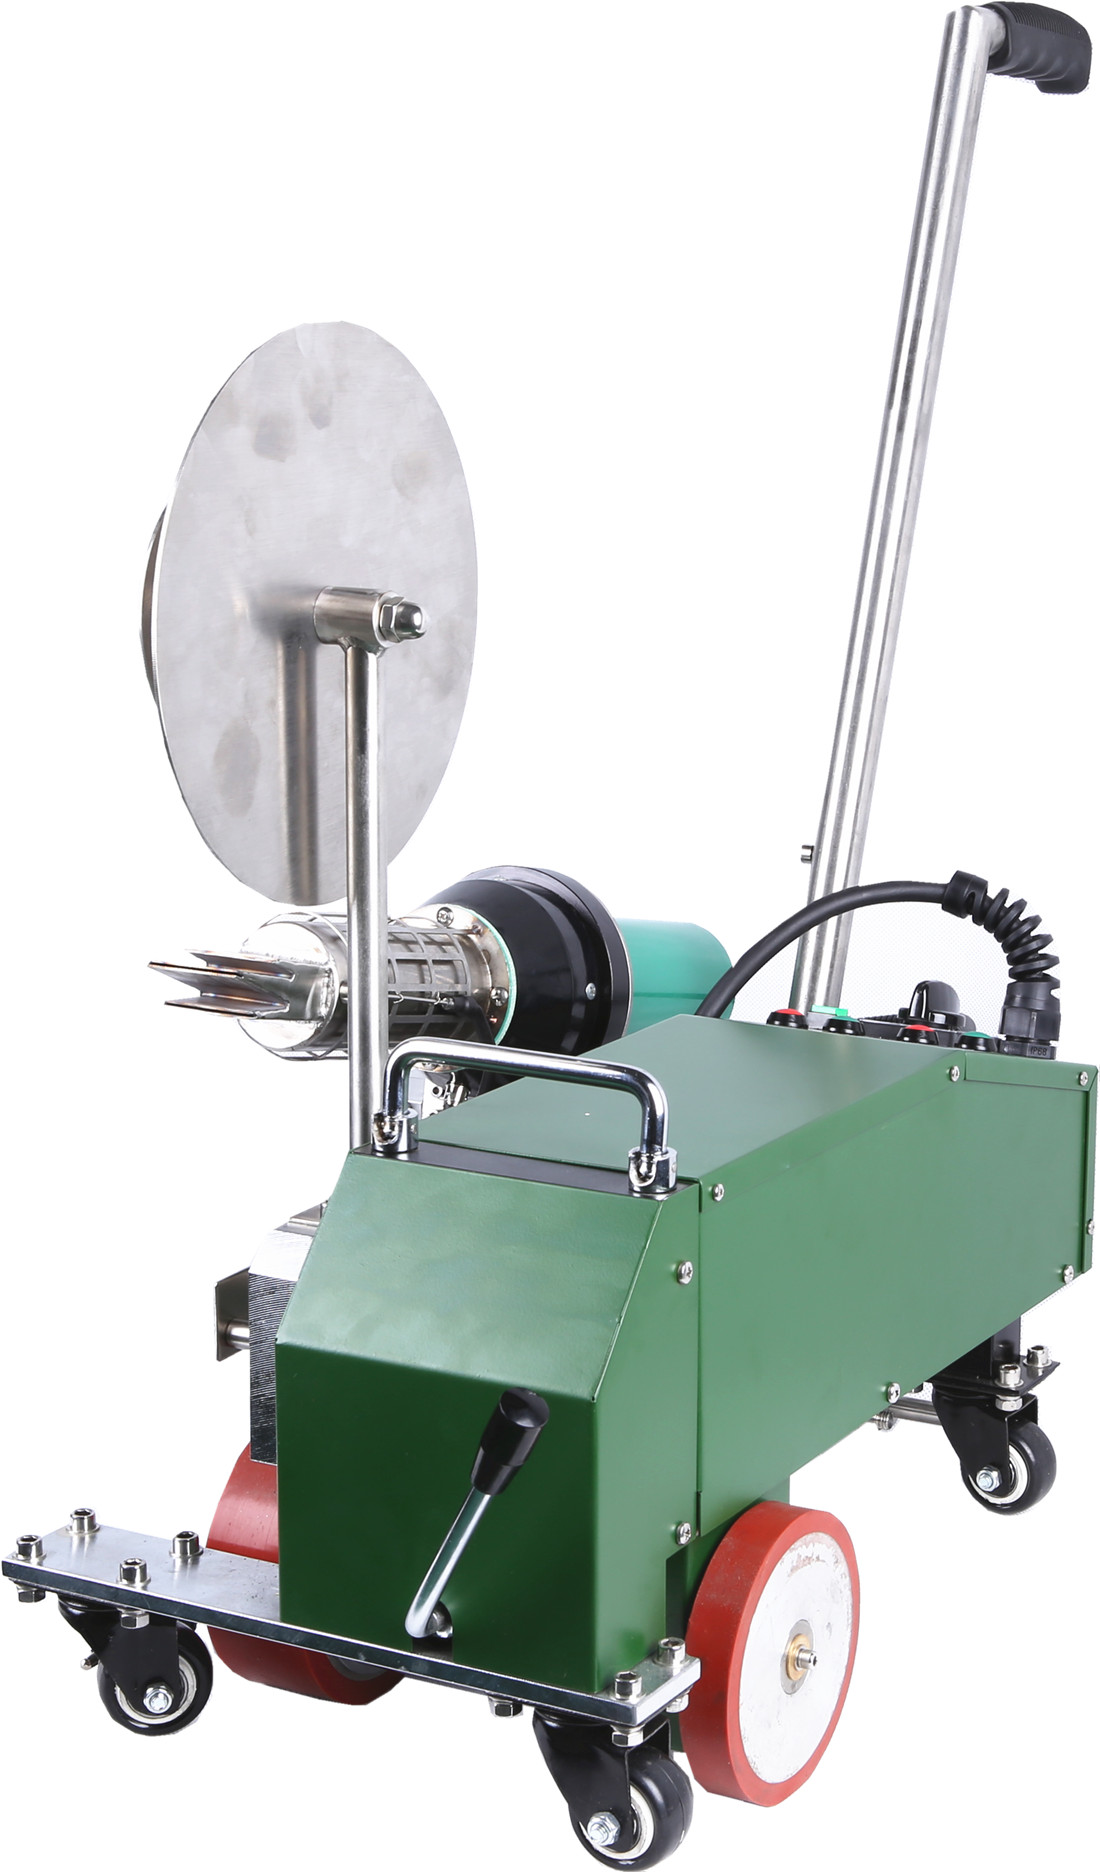 SWT-MAT2 Tape welder for welding of tarpaulin bows on truck covers